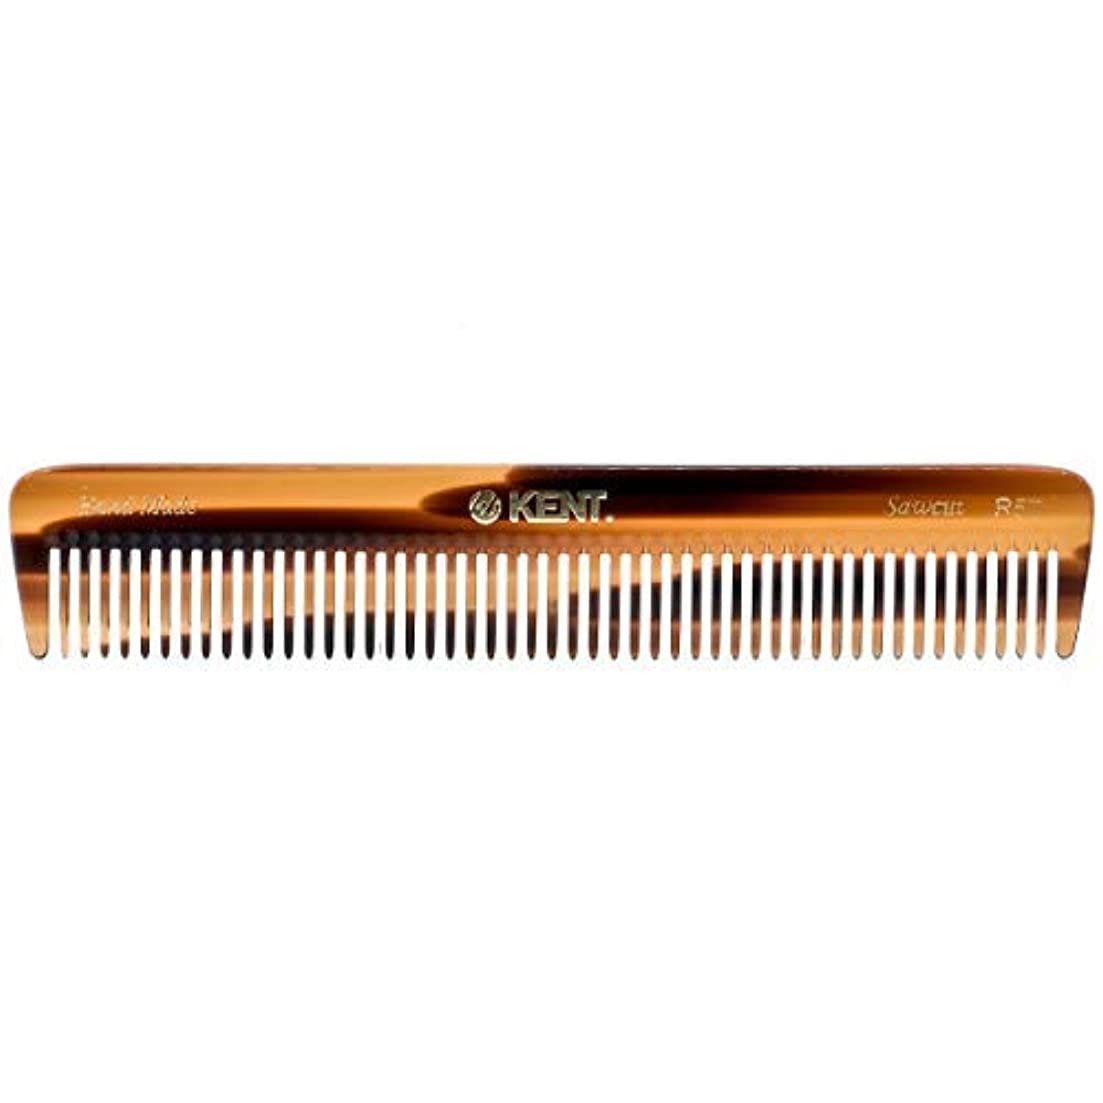 セクタ農場割るKent The Hand Made Comb Coarse/Fine for Men 6.5 Inch, 1 Ounce [並行輸入品]